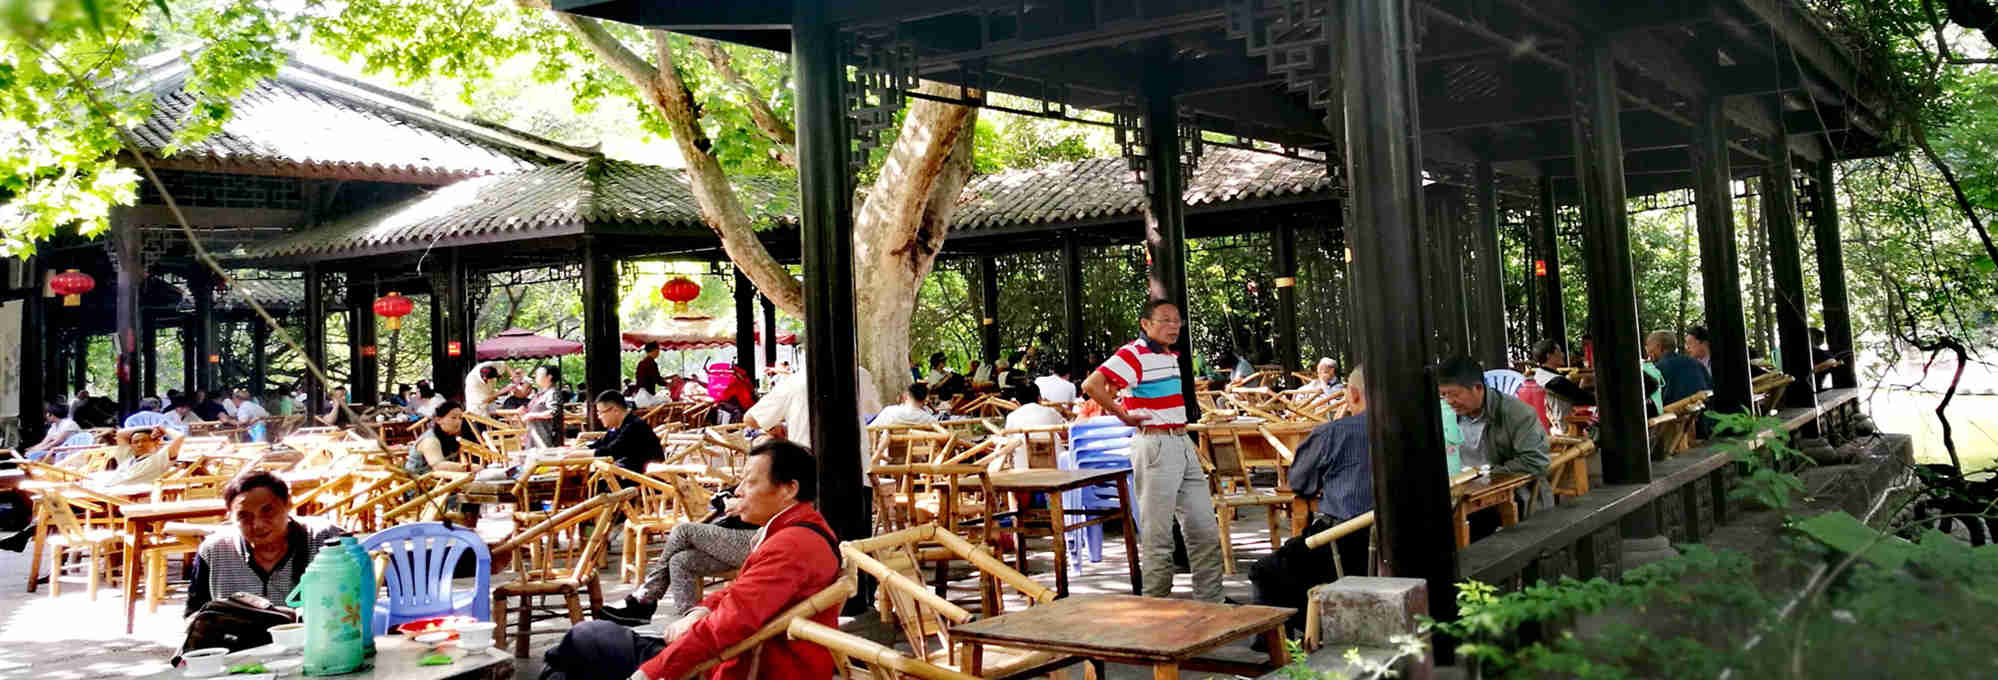 3-Hour Walking Tour in Chengdu People's Park and Learning Mahjong